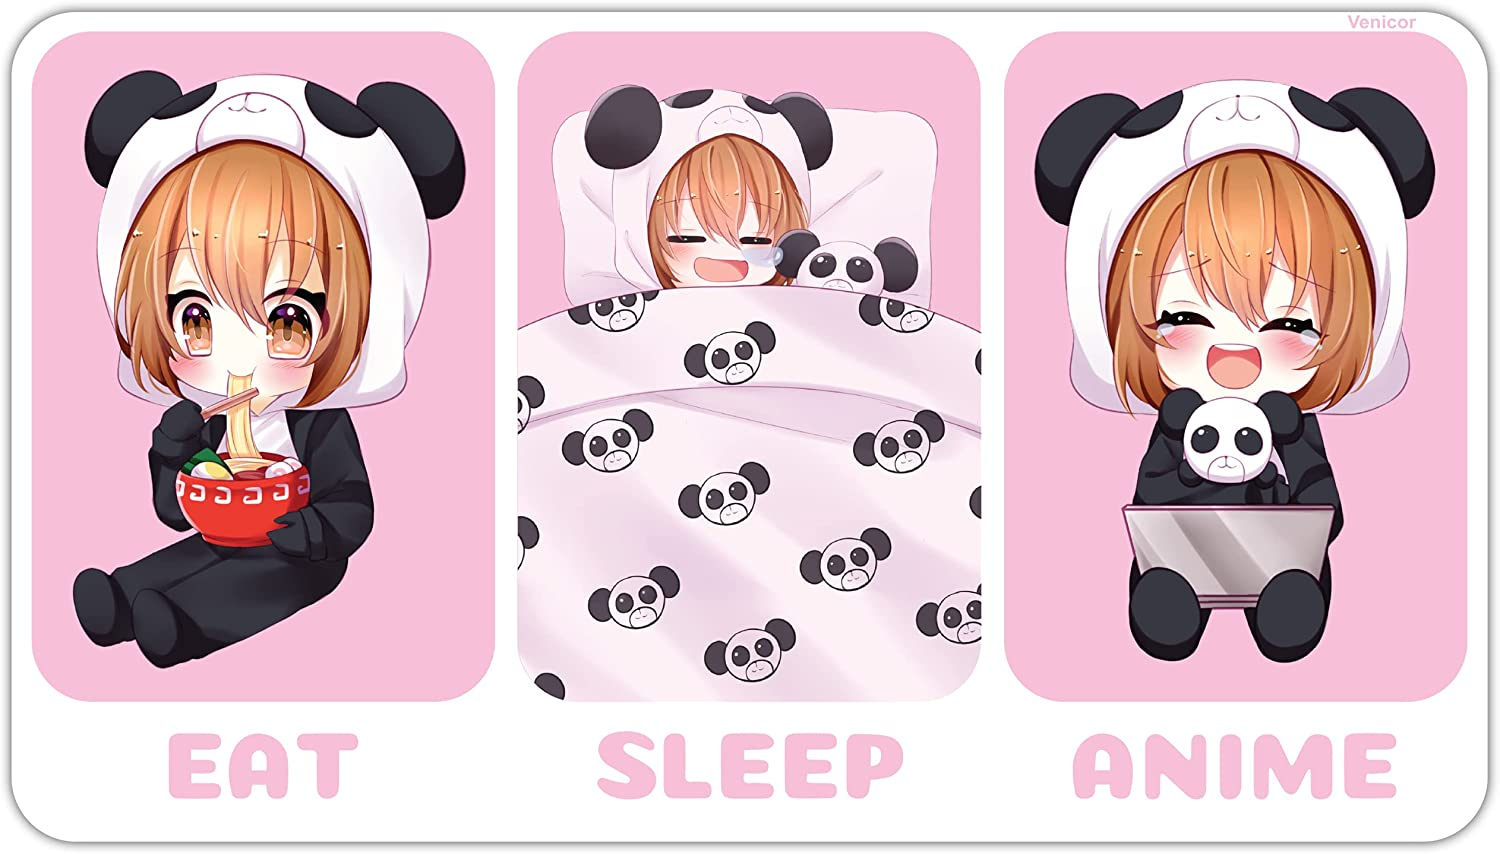 Kawaii Anime Room Decor - 9.5 x 17 Inches - Aluminum - Eat Sleep Anime - Chibi Panda Girl Wall Decor for Teen Girls - Anime Lovers Gifts - Cute Pink Bedroom Decorations Aesthetic Poster Tapestry